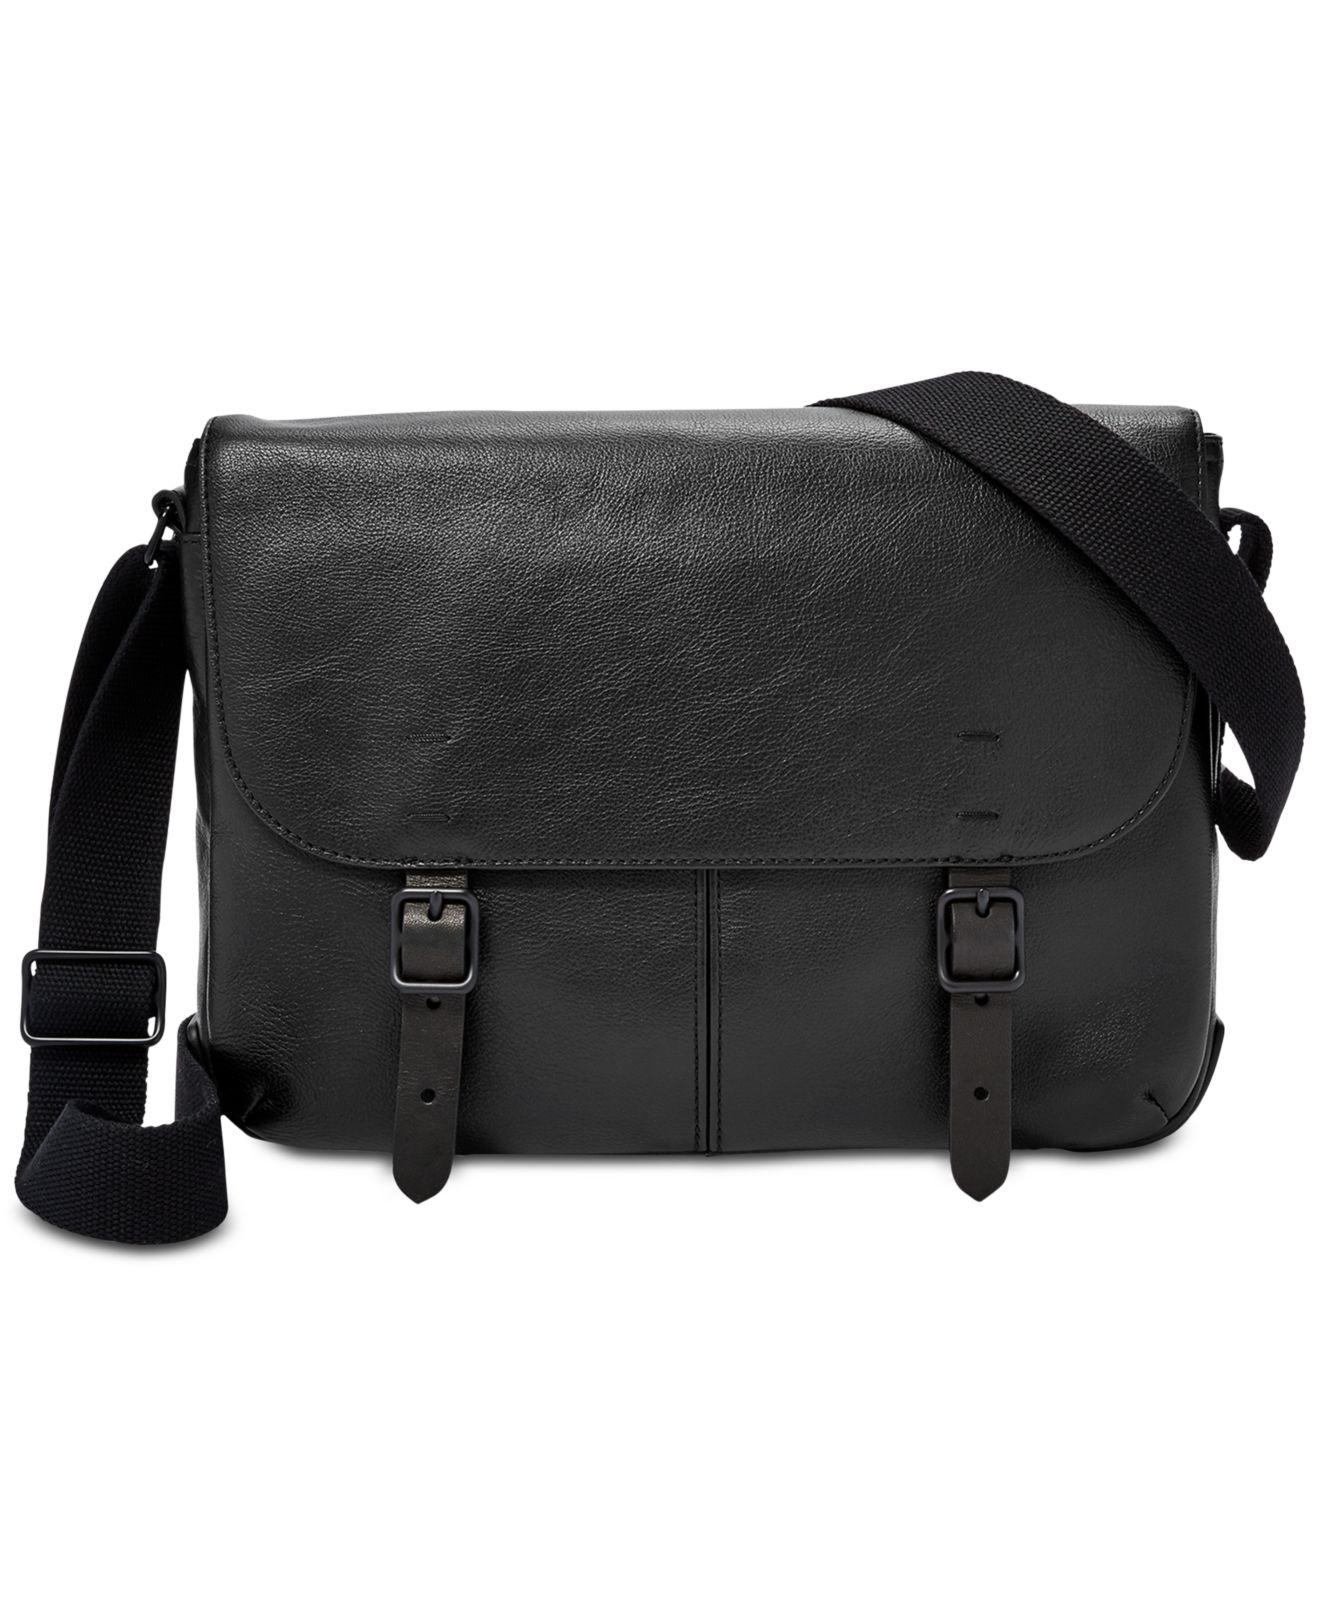 Lyst - Fossil Men s Buckner Small Leather Commuter Bag in Black for ... 8be2afeca1